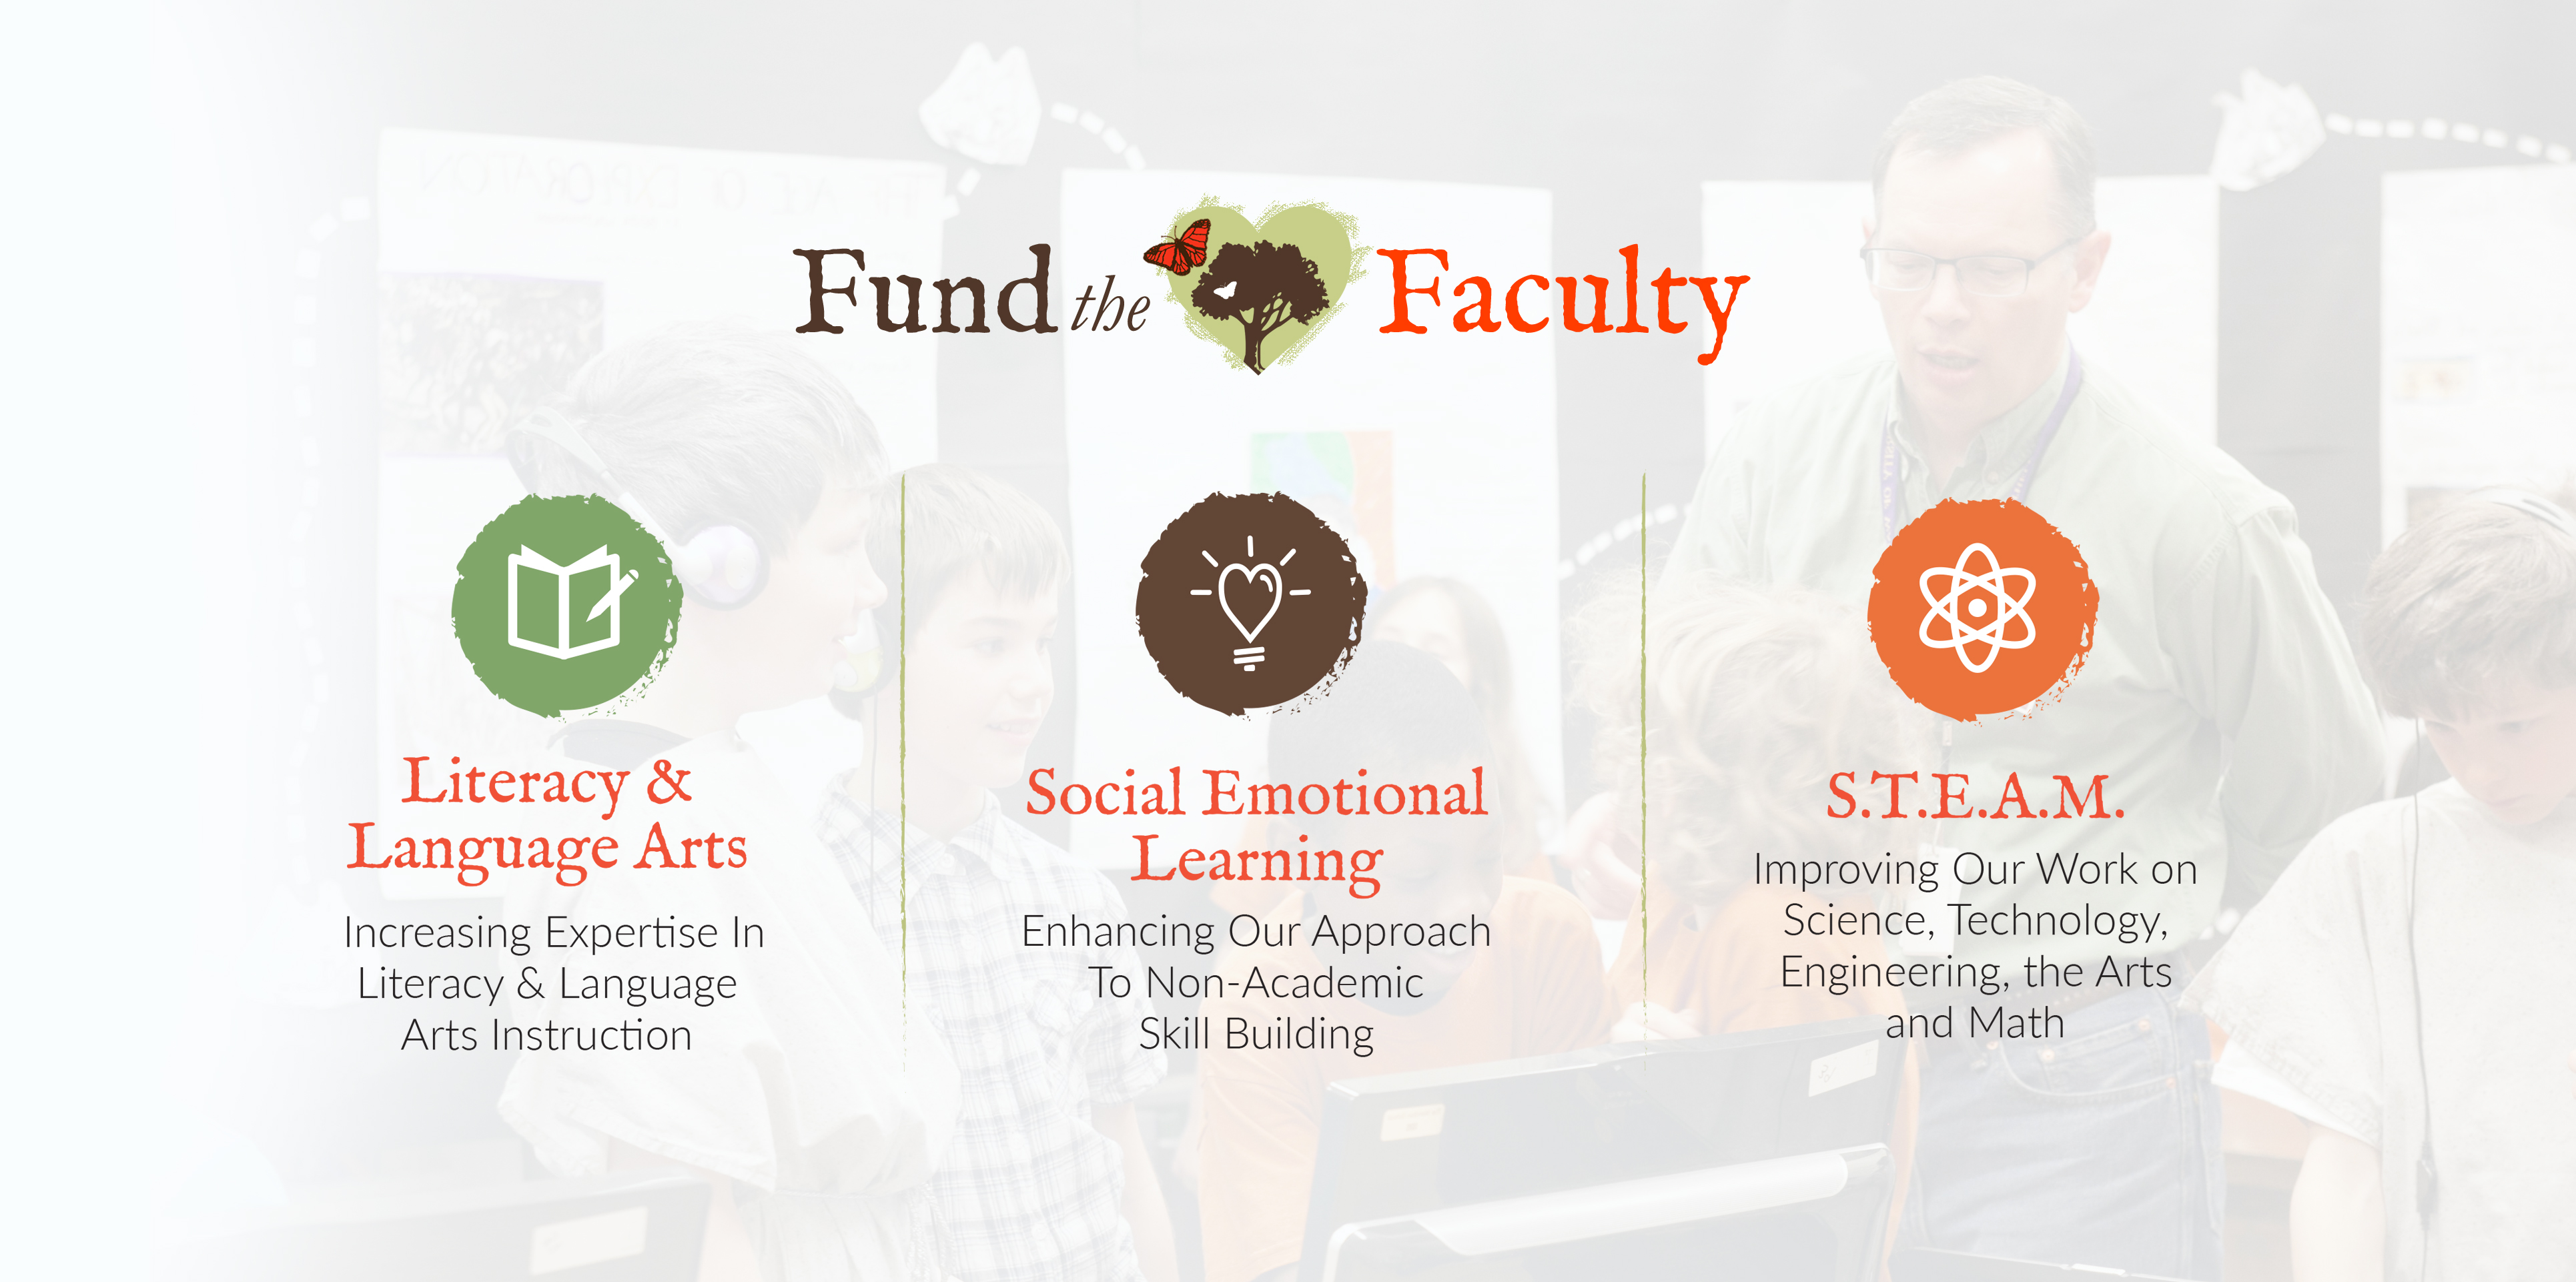 FundtheFaculty_Icons